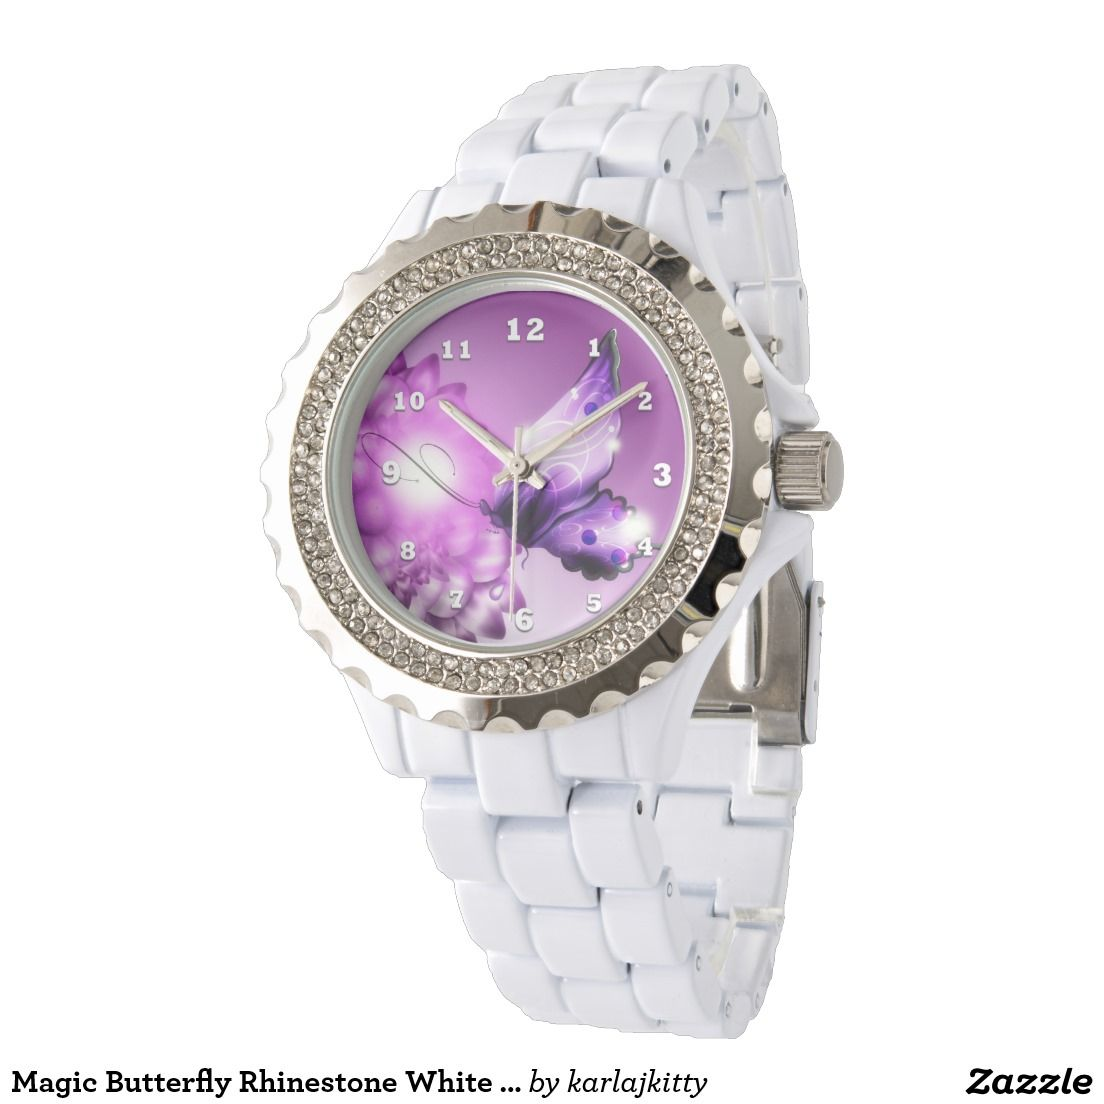 Magic Butterfly Rhinestone White Enamel Watch Gorgeous white enamel rhinestone watch - designed with a magical purple butterfly and lavender/pink flowers